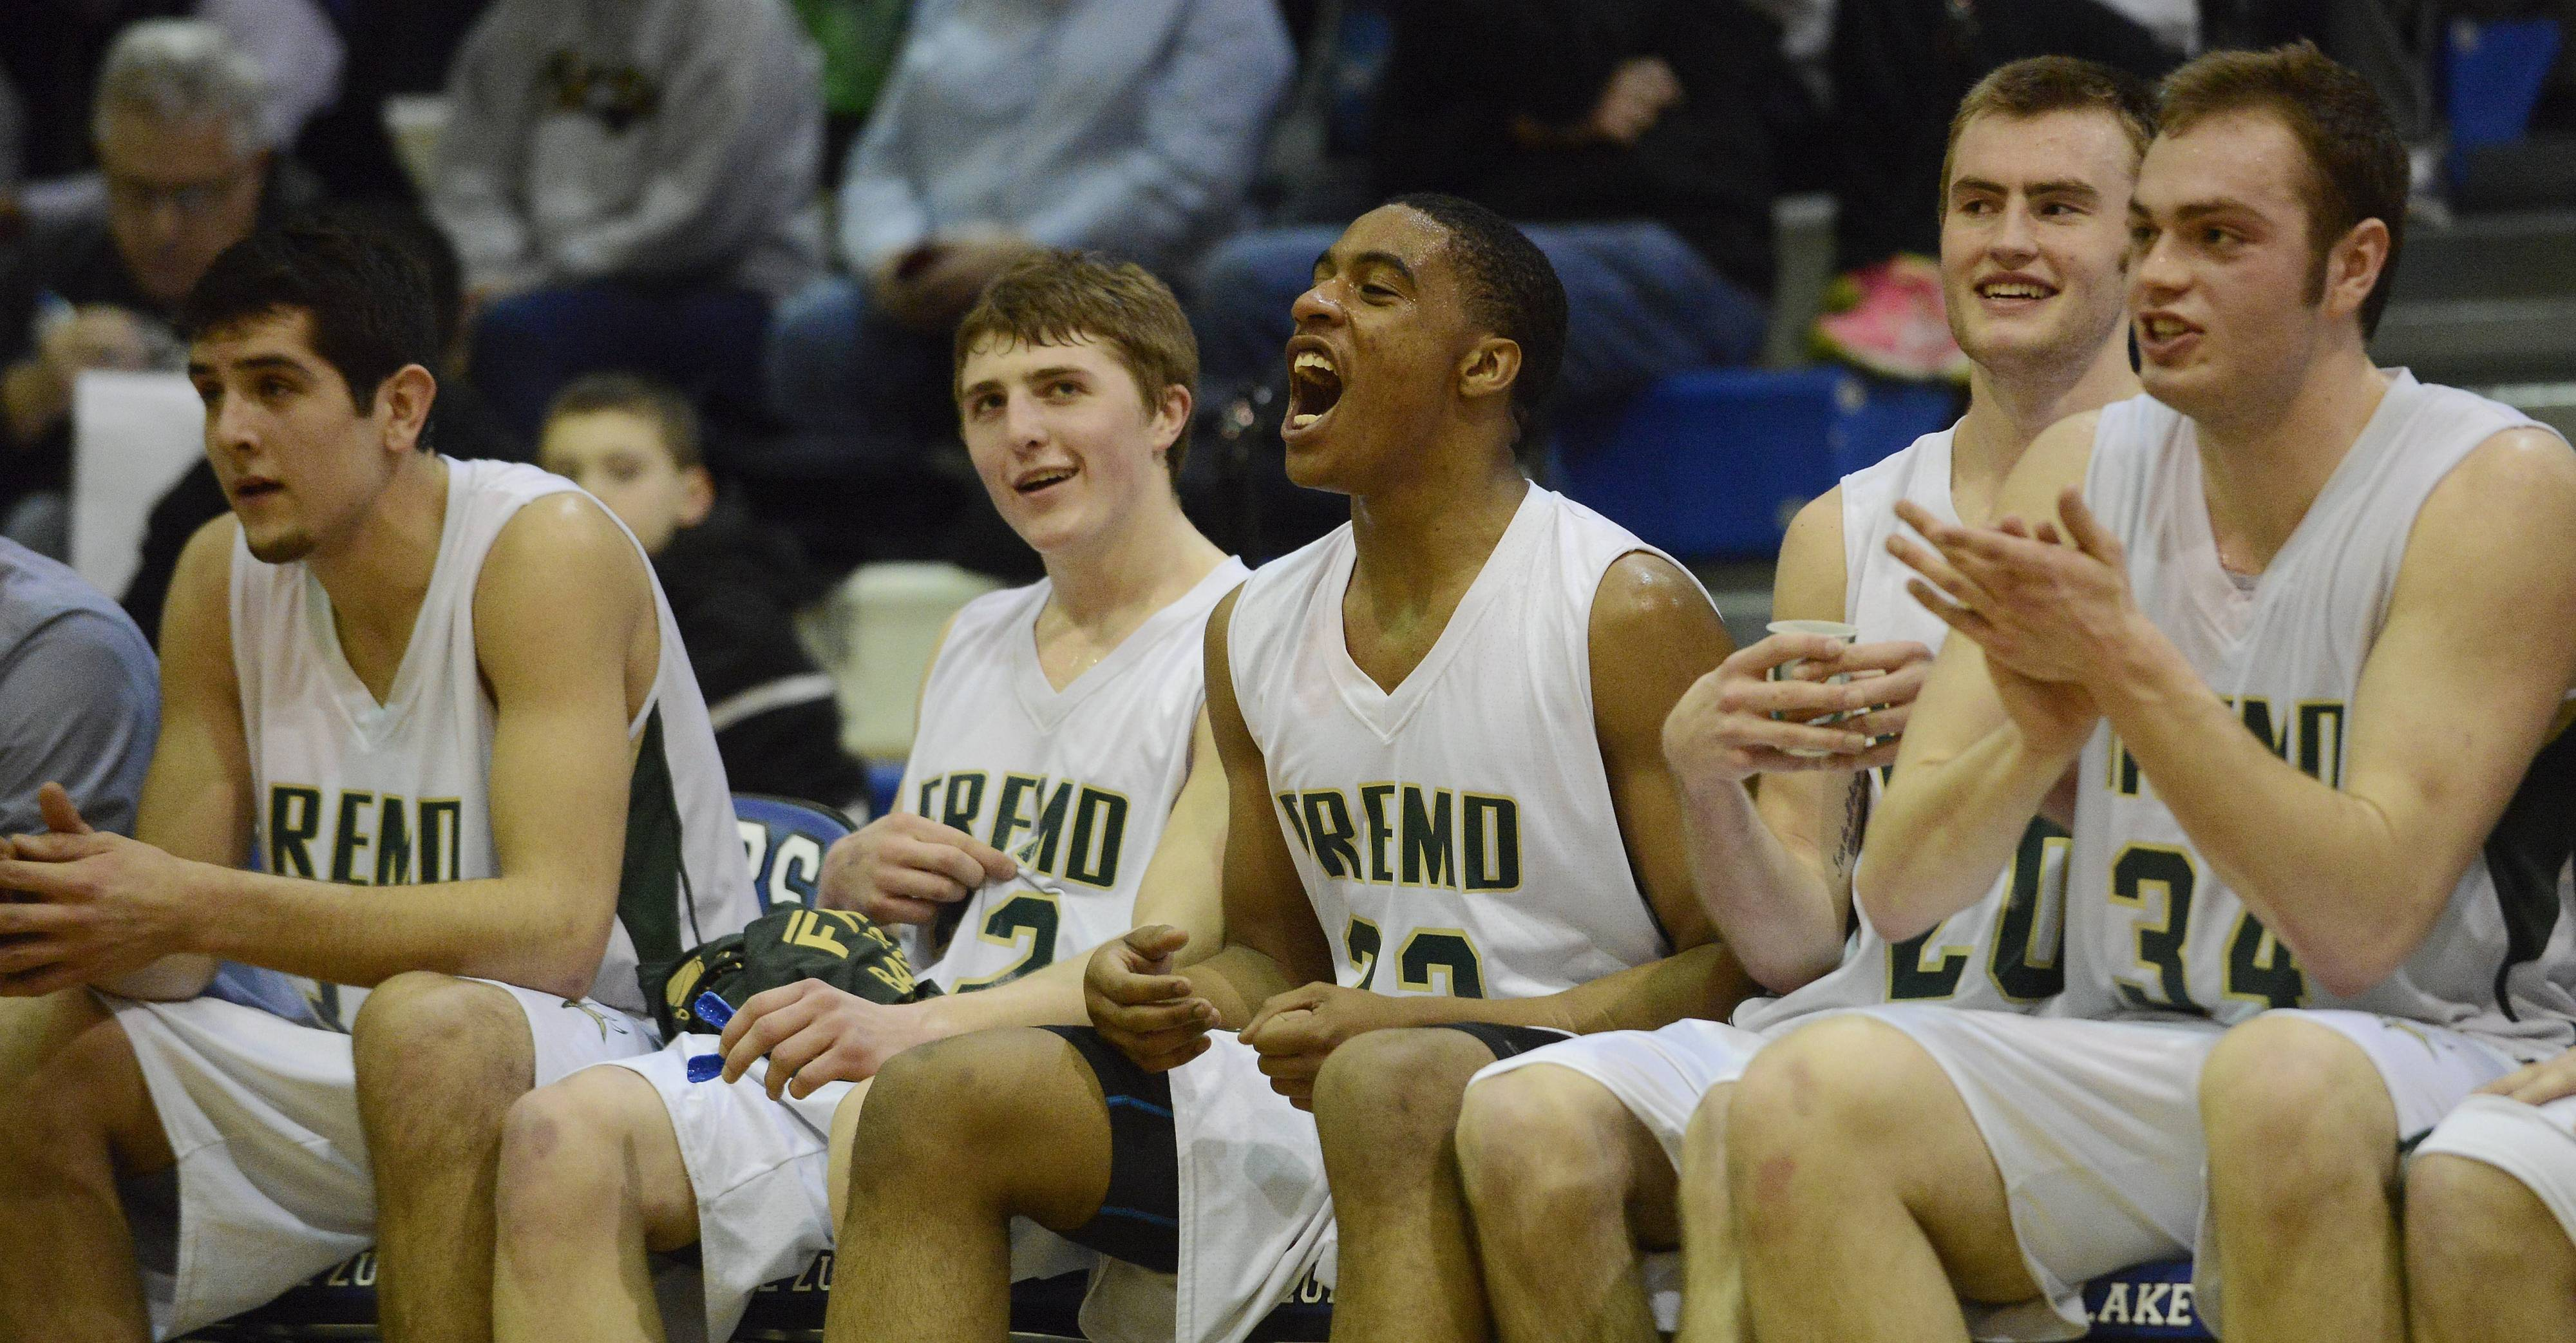 Fantastic Four gives Fremd more in 28th win